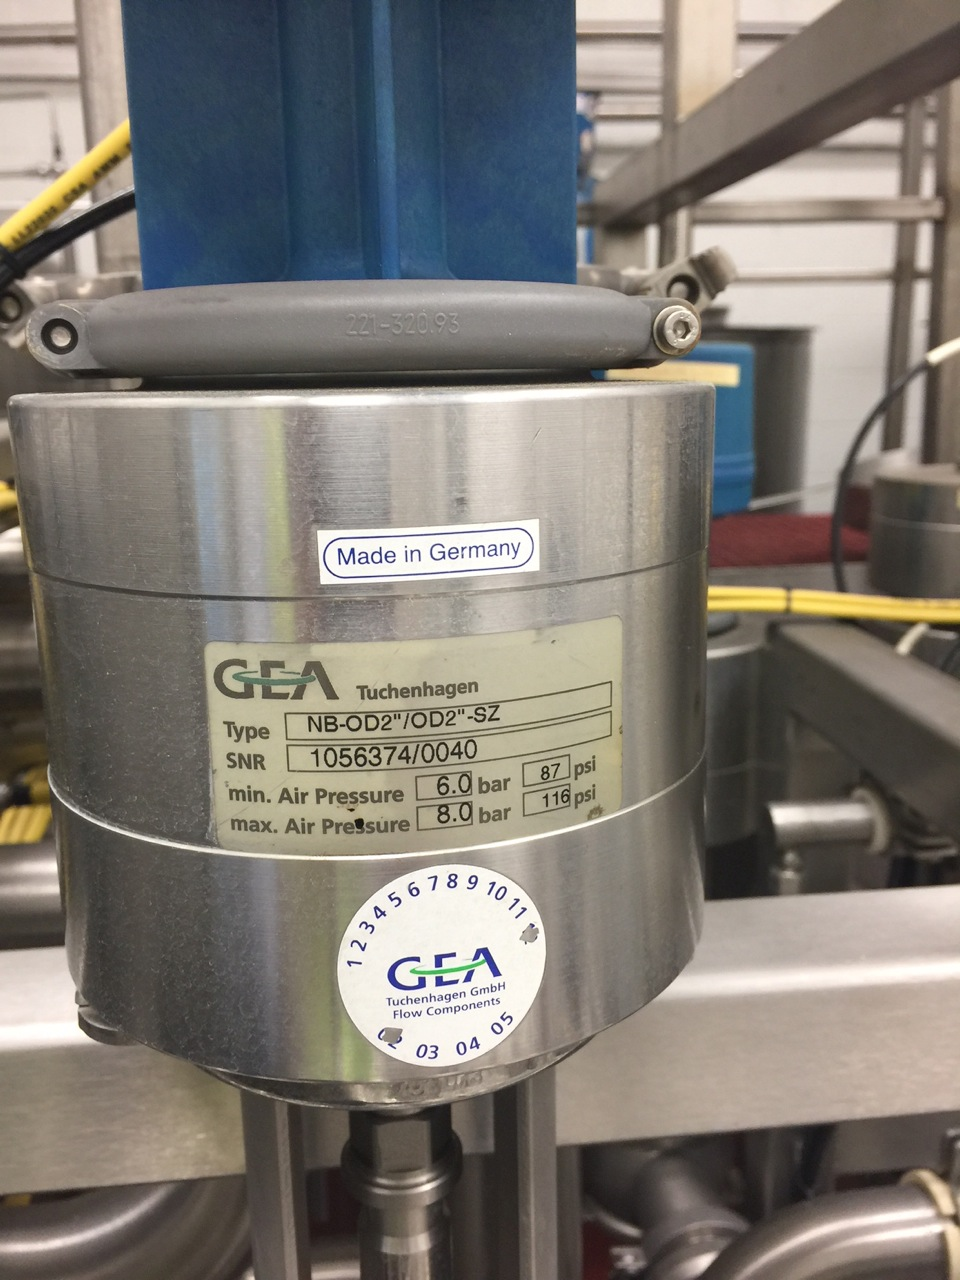 Stainless Steel CIP Manifold with GEA Valves | Rigging Price: $100 - Image 3 of 6